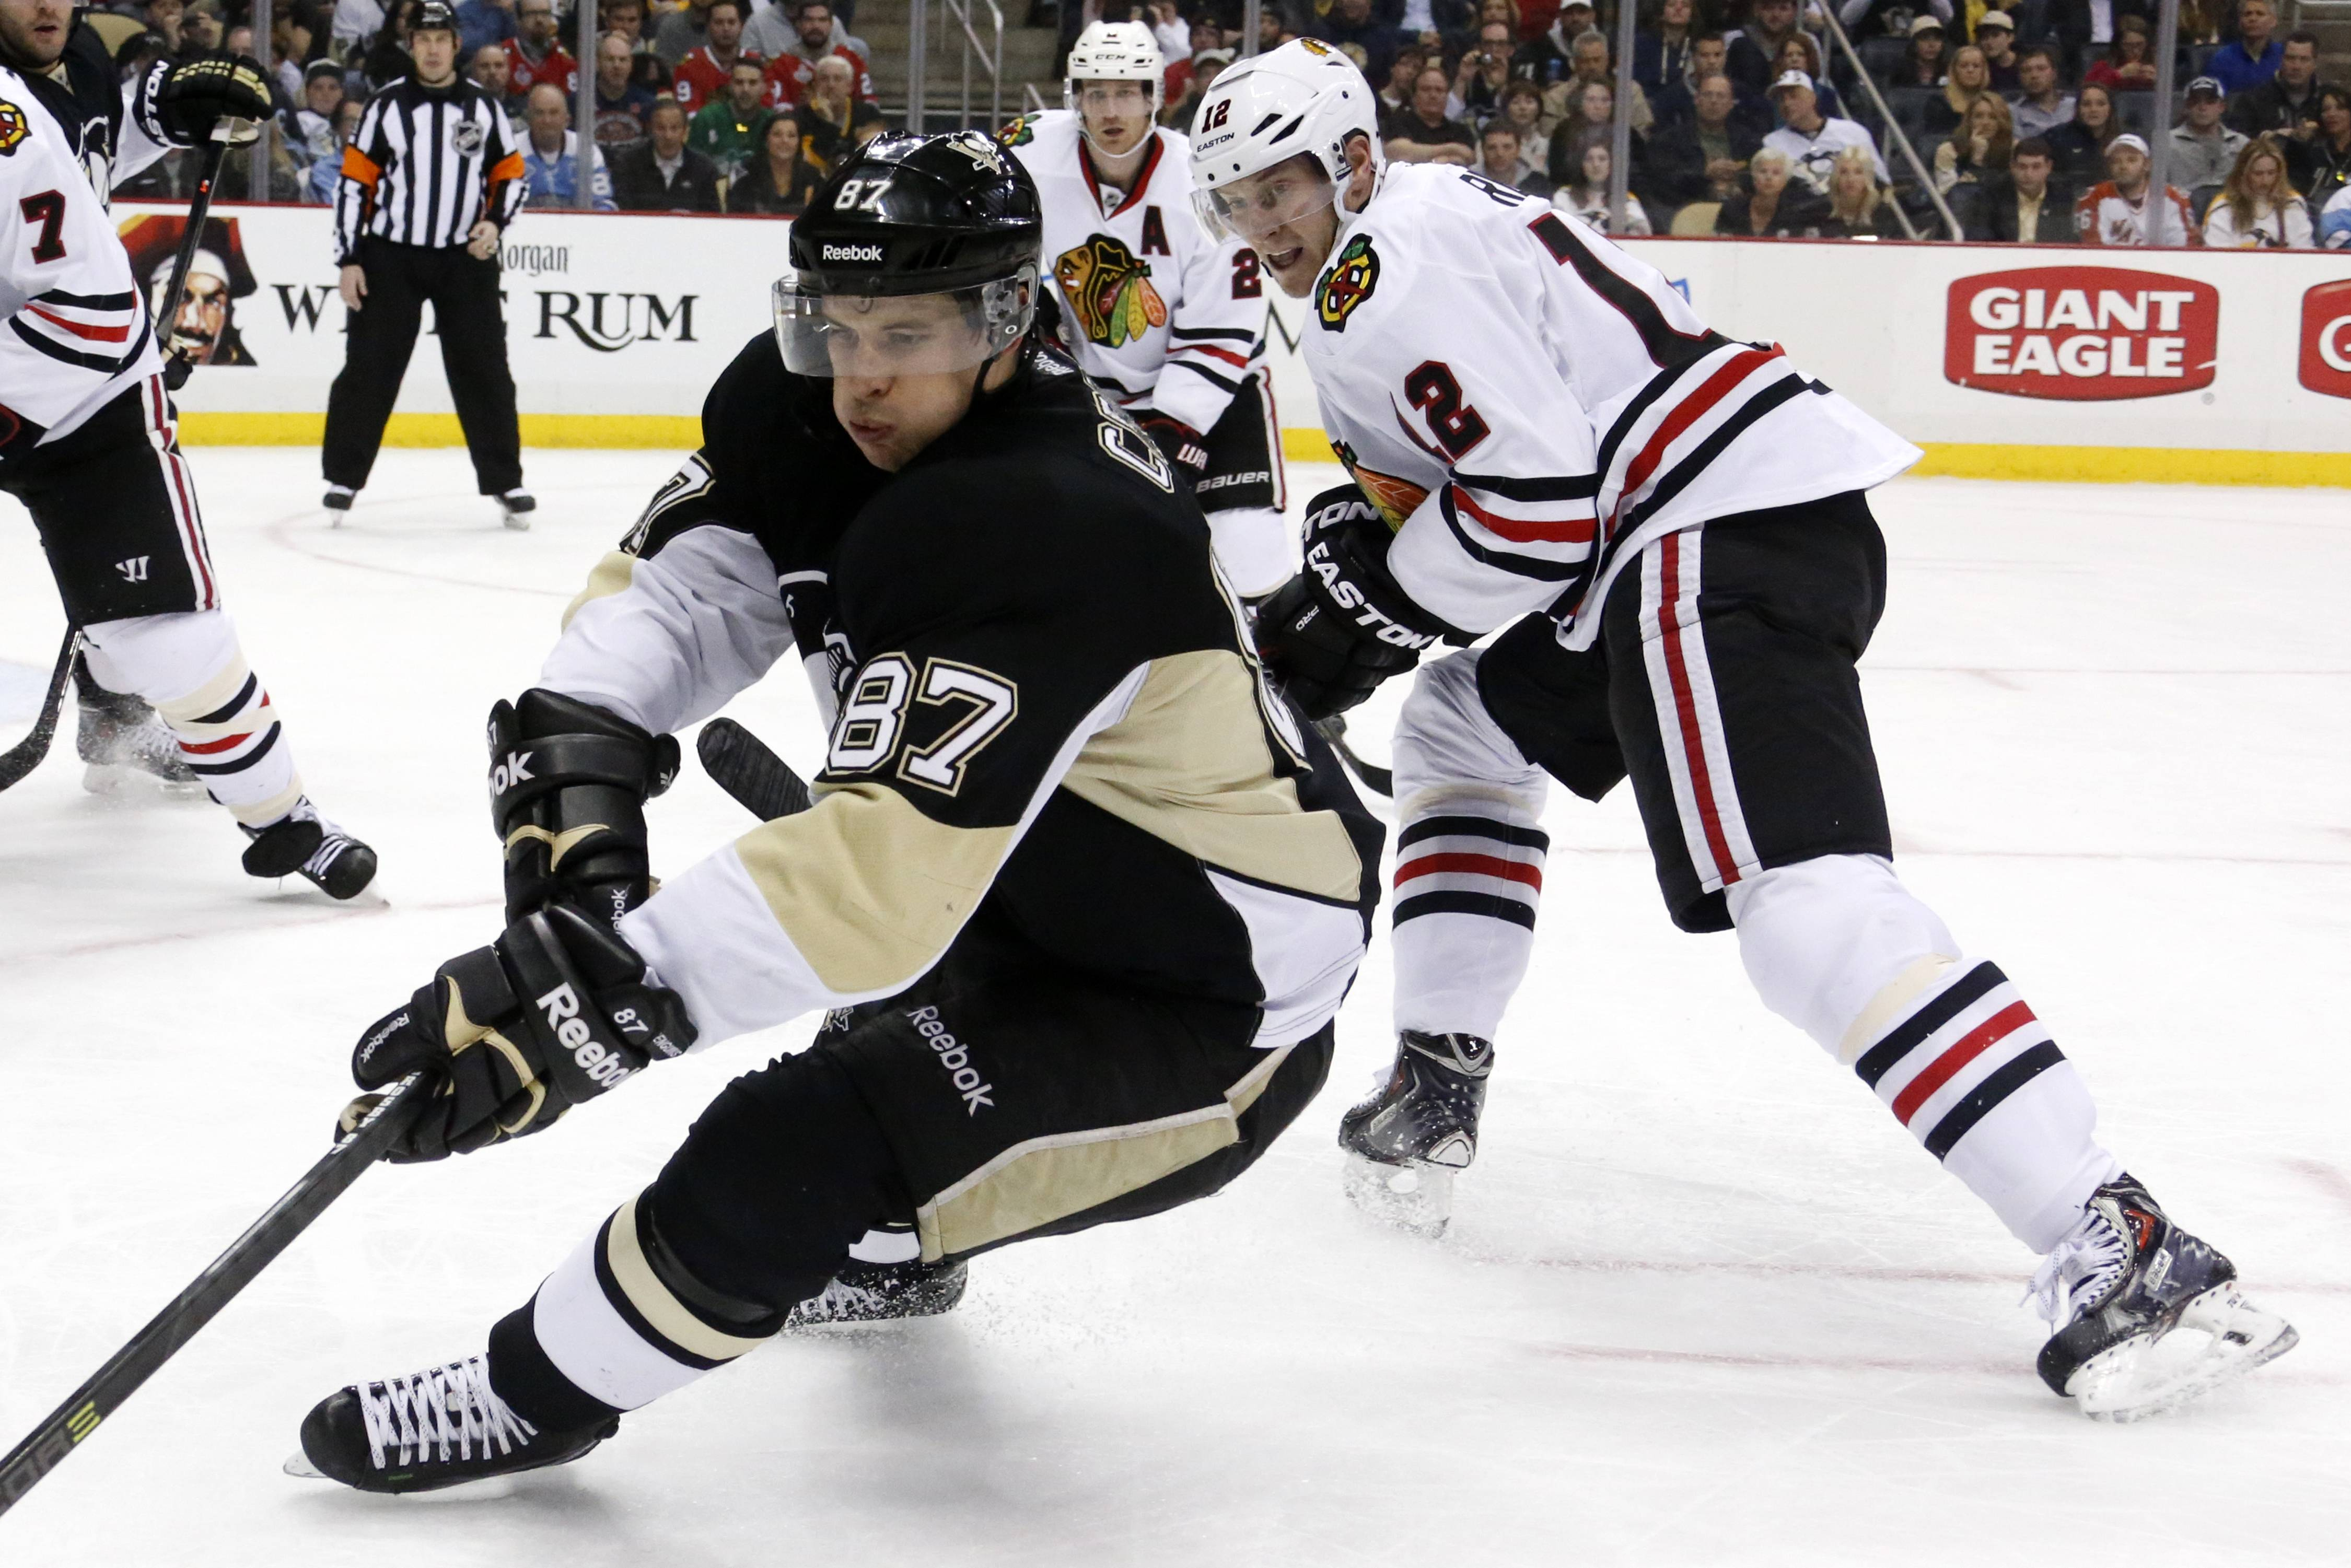 The Pittsburgh Penguins' Sidney Crosby (87) works the puck in the corner against Chicago Blackhawks center Peter Regin (12) in the second period of an NHL hockey game in Pittsburgh, Sunday, March 30, 2014. Crosby scored twice to lead the Penguins to a 4-1 win over the Blackhawks.